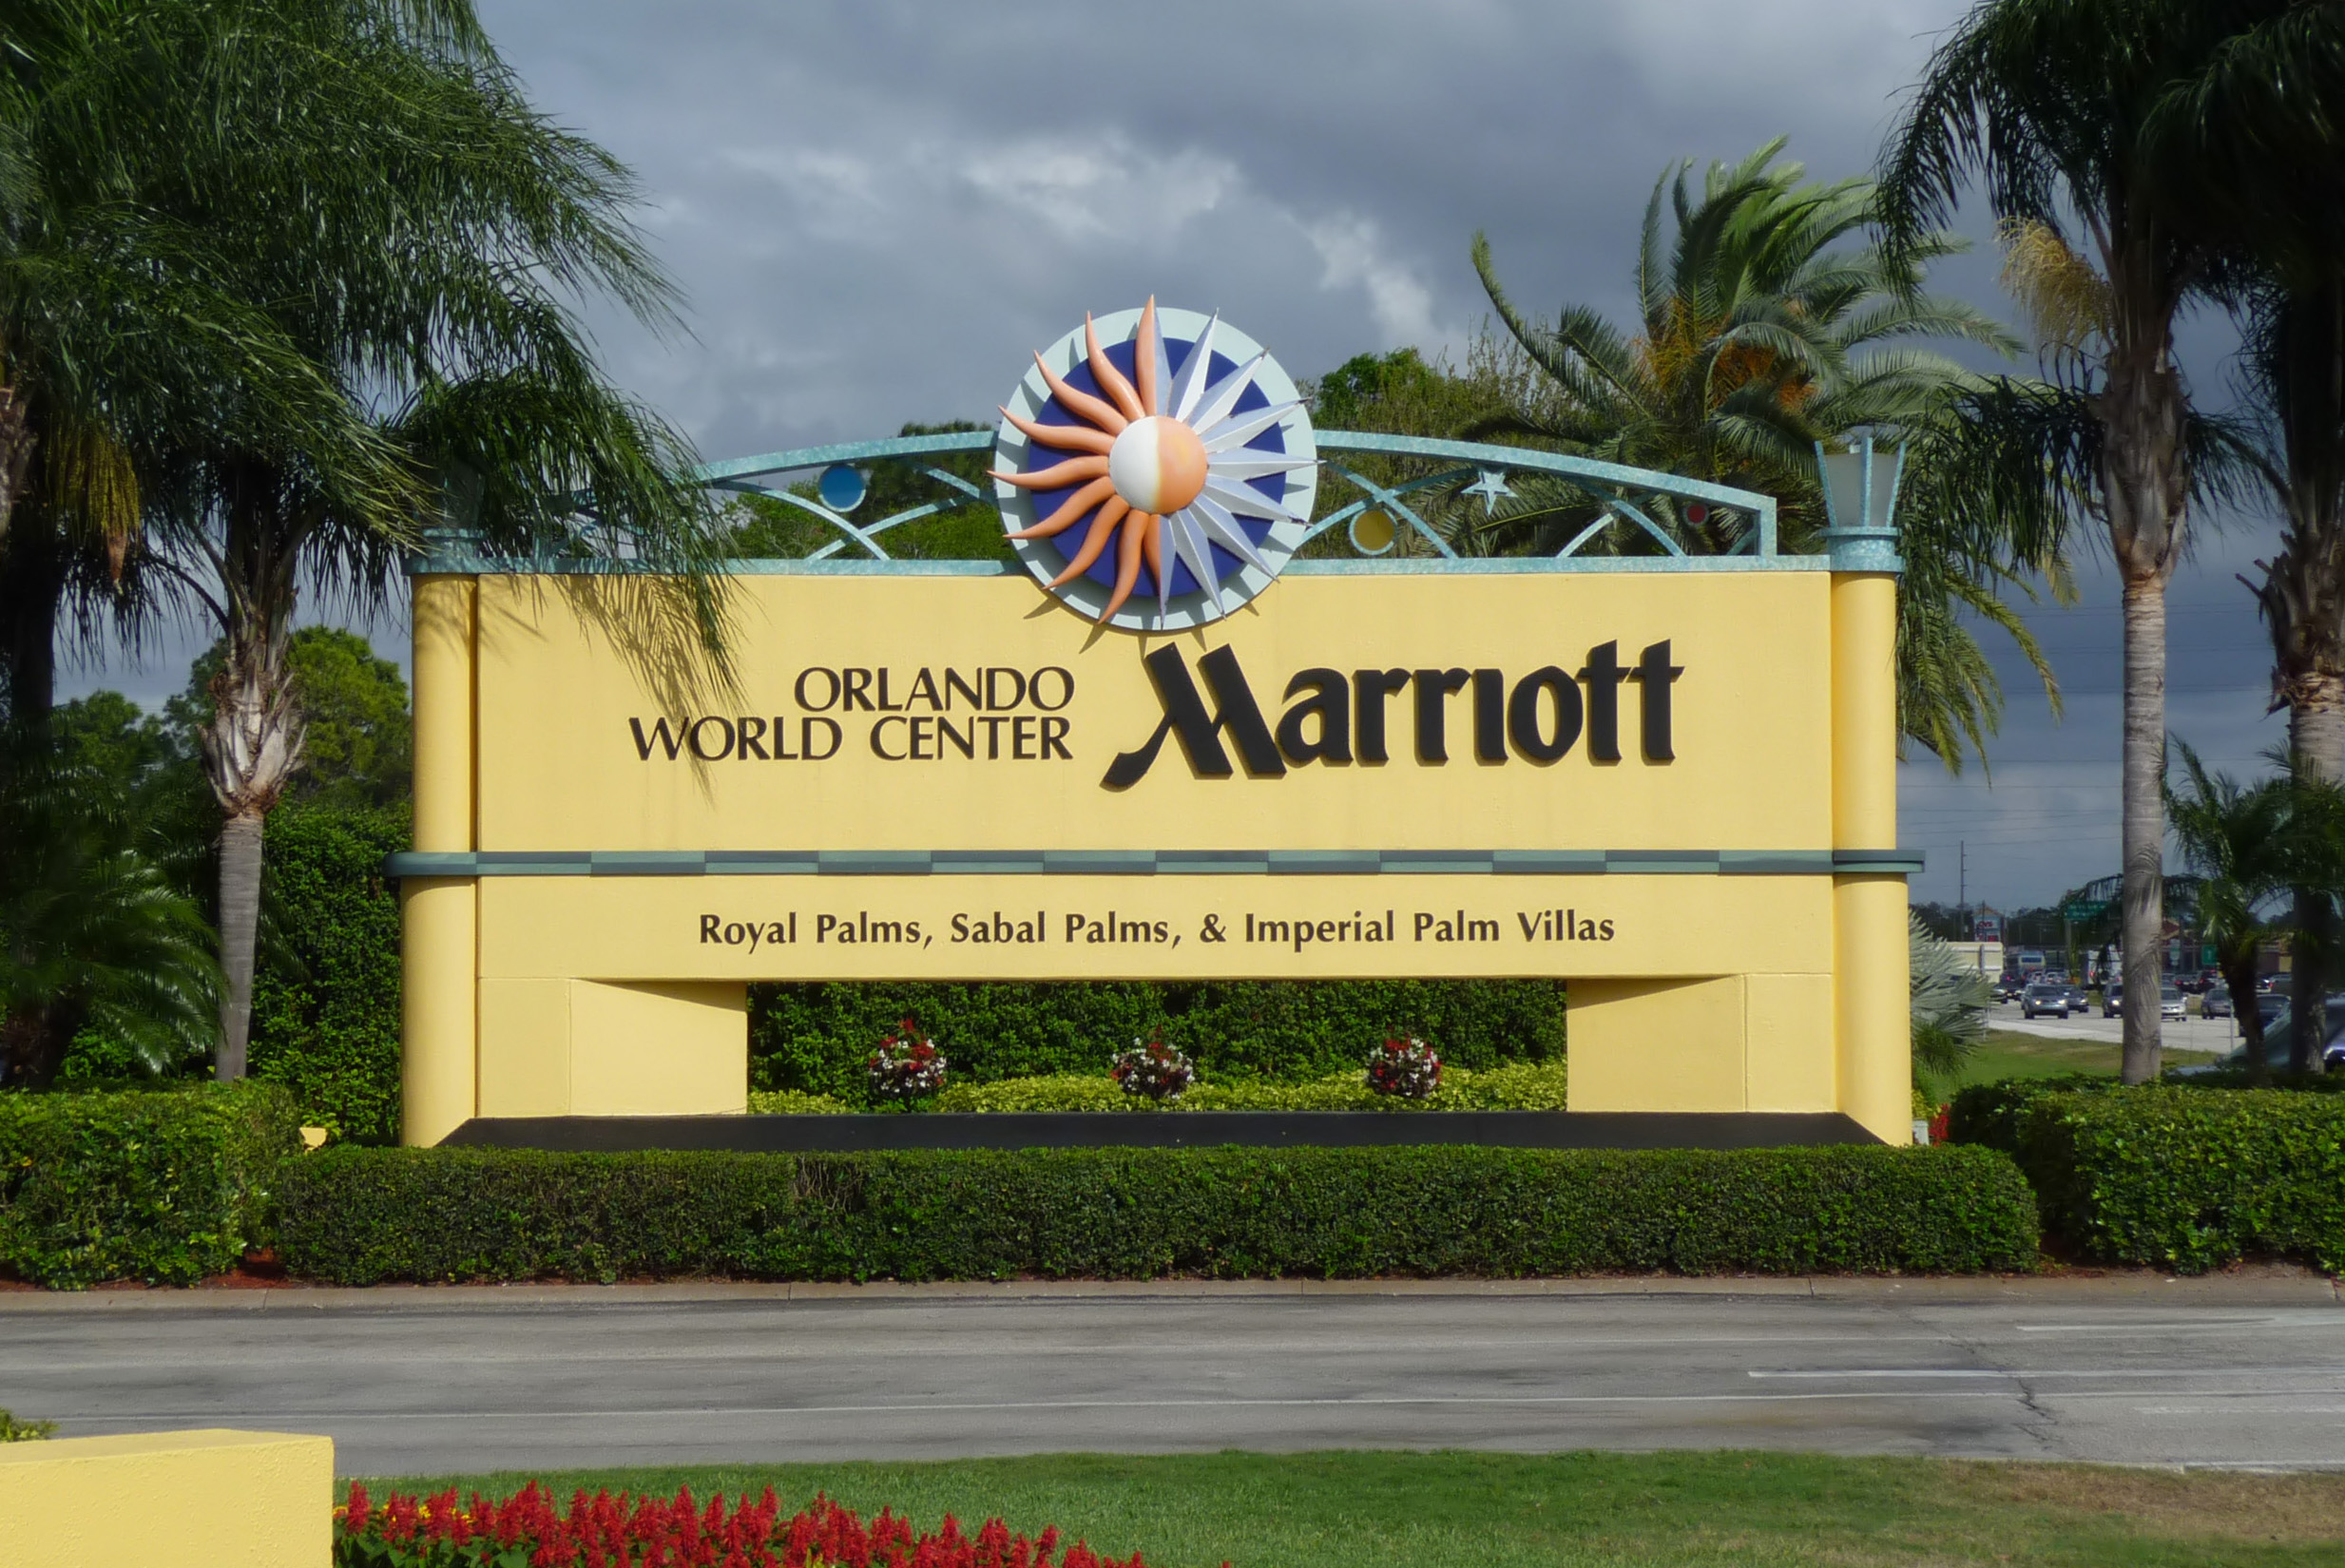 Photo 2 Marriott Orlando World Center